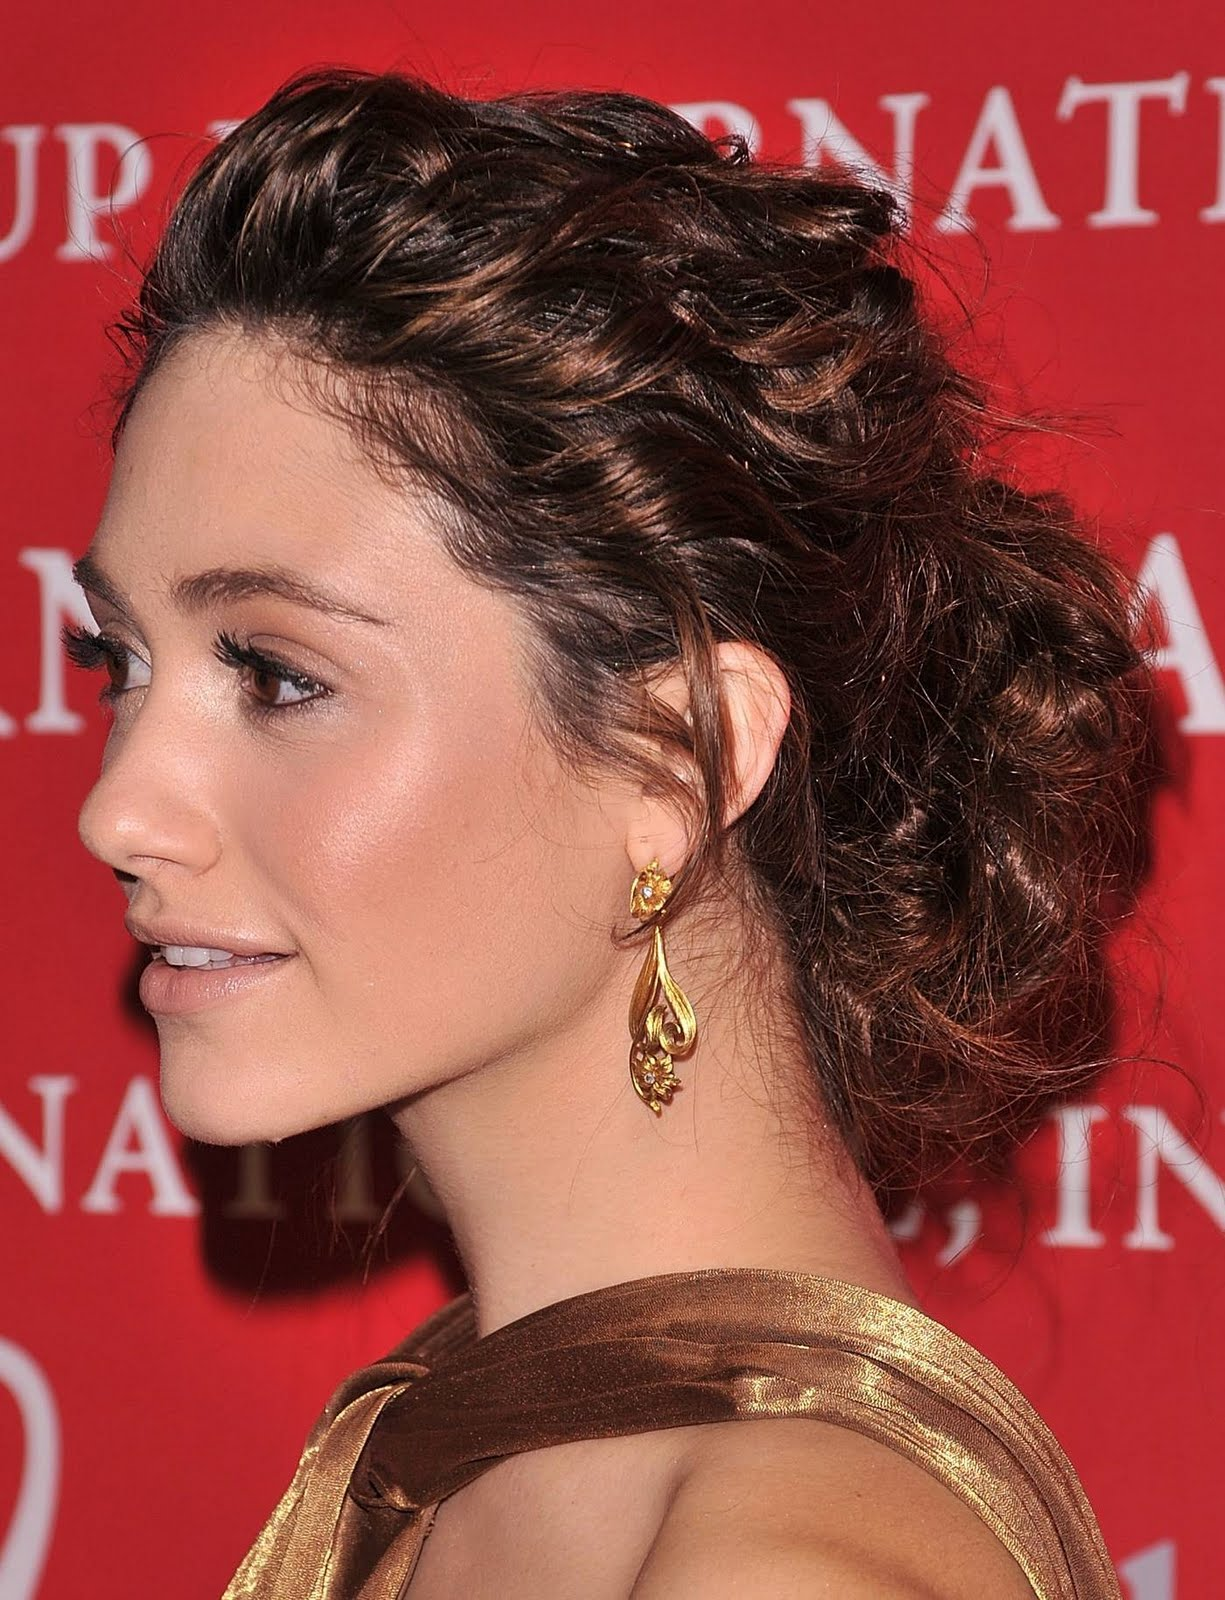 updo hairstyle hairstyles-8